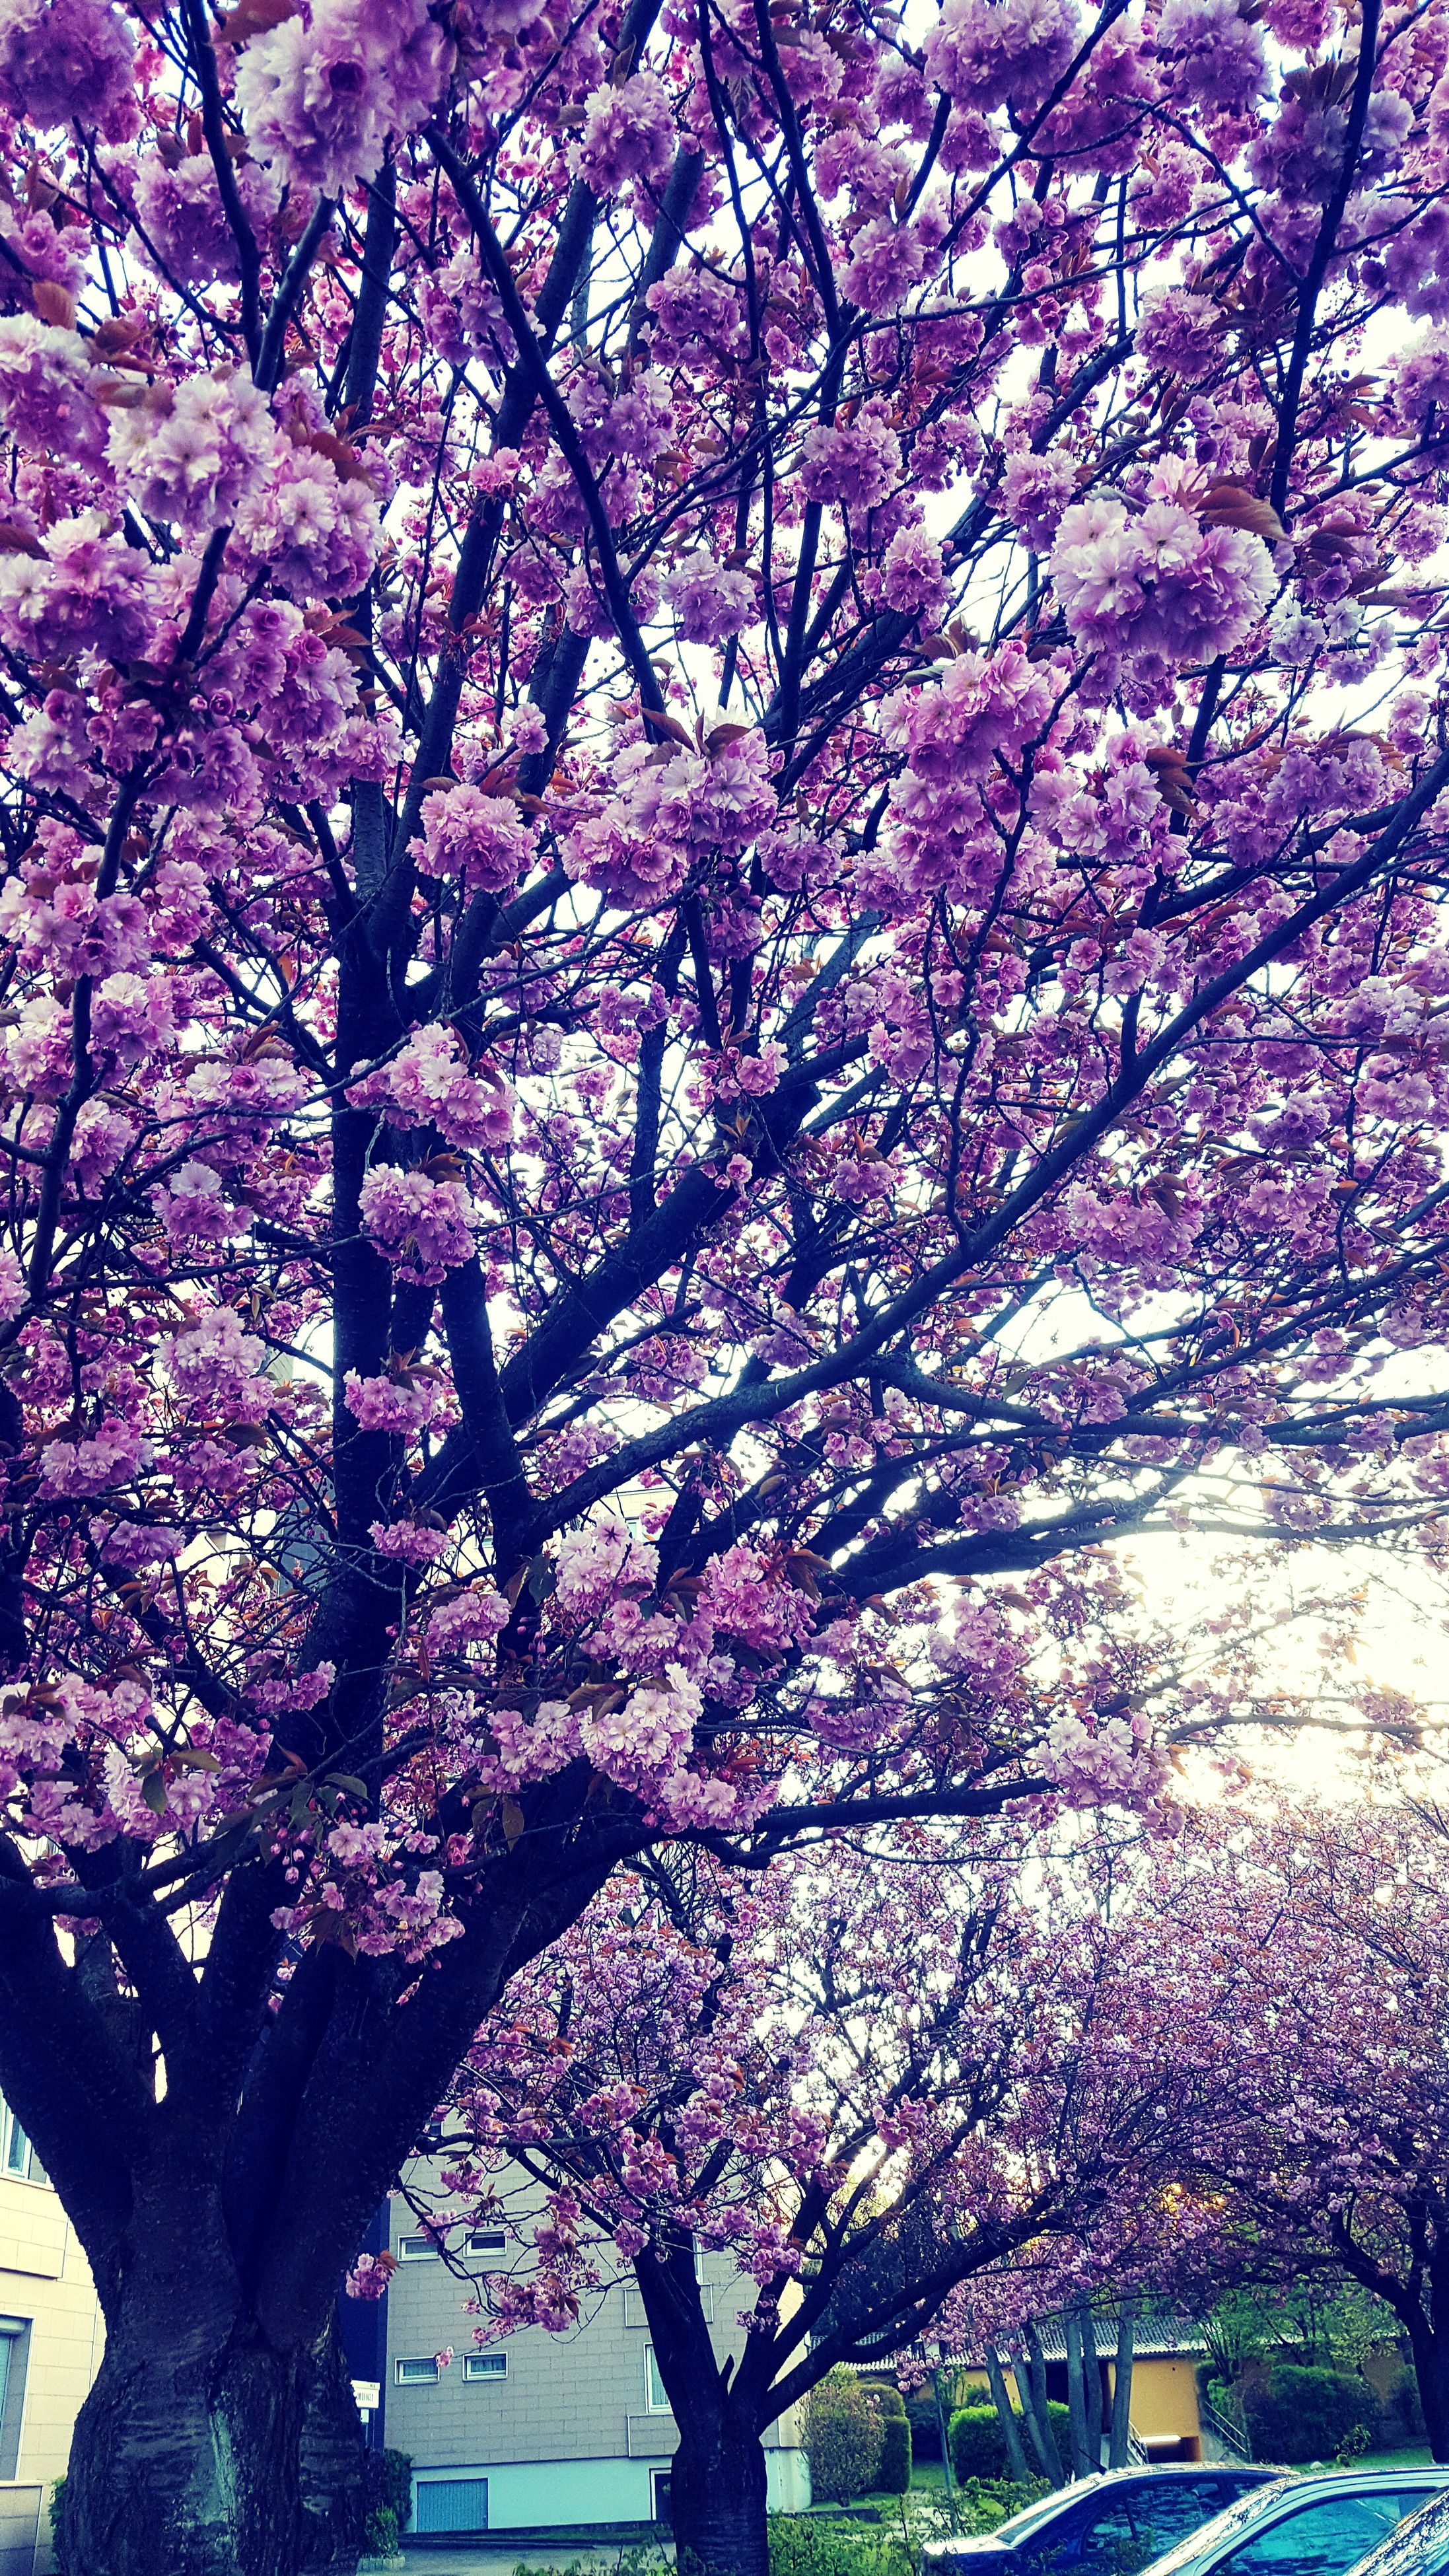 flower, tree, branch, growth, cherry blossom, pink color, freshness, blossom, beauty in nature, cherry tree, fragility, nature, in bloom, springtime, blooming, day, season, park - man made space, low angle view, outdoors